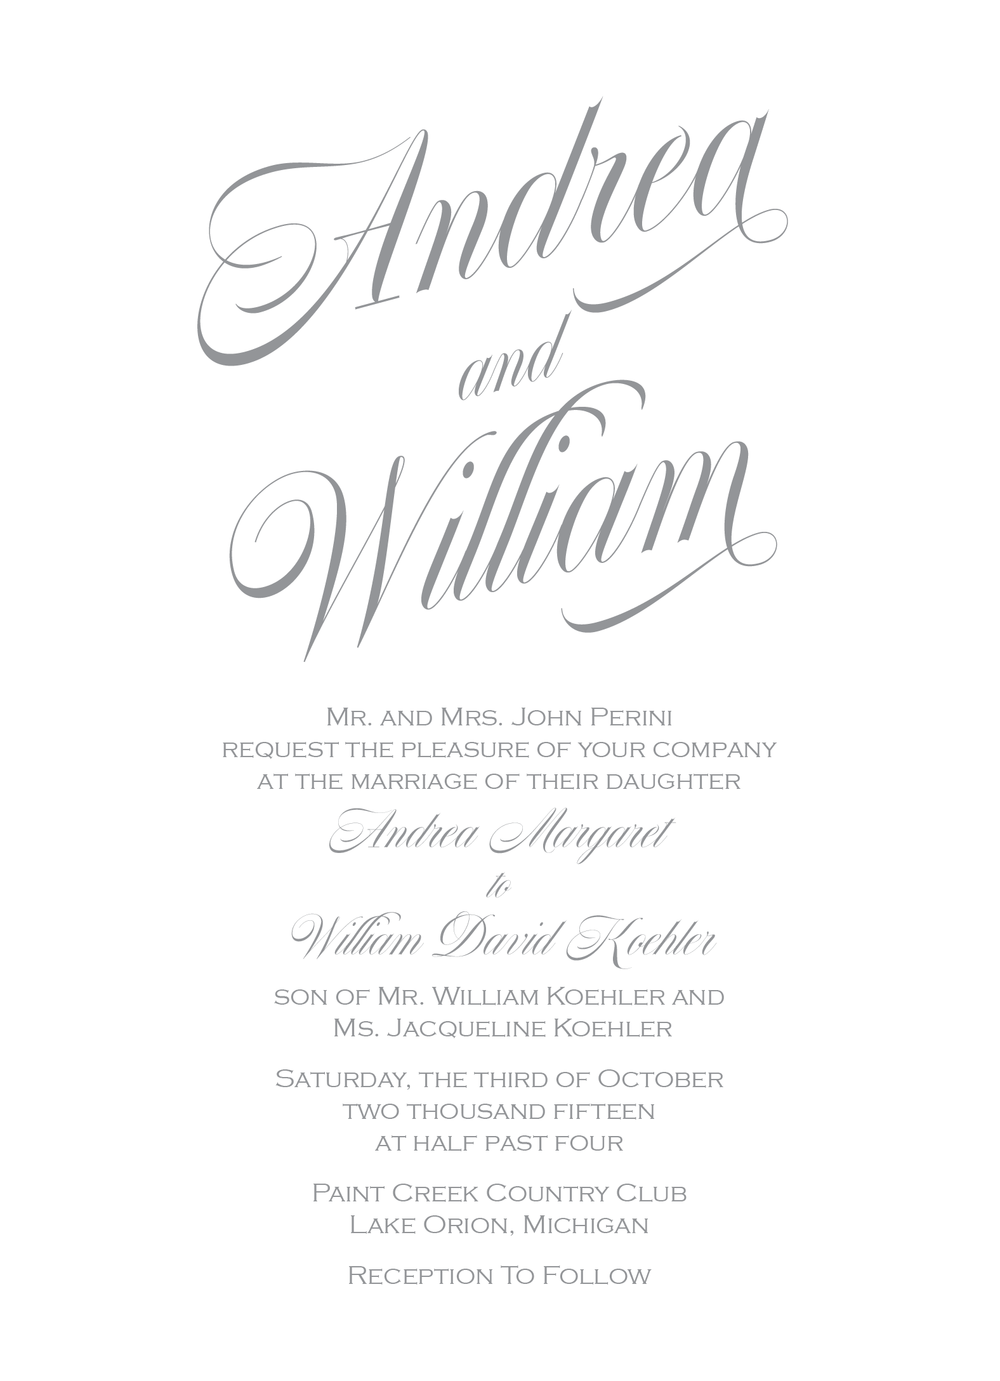 Lace Wedding Suite_Andrea_Invitation.png